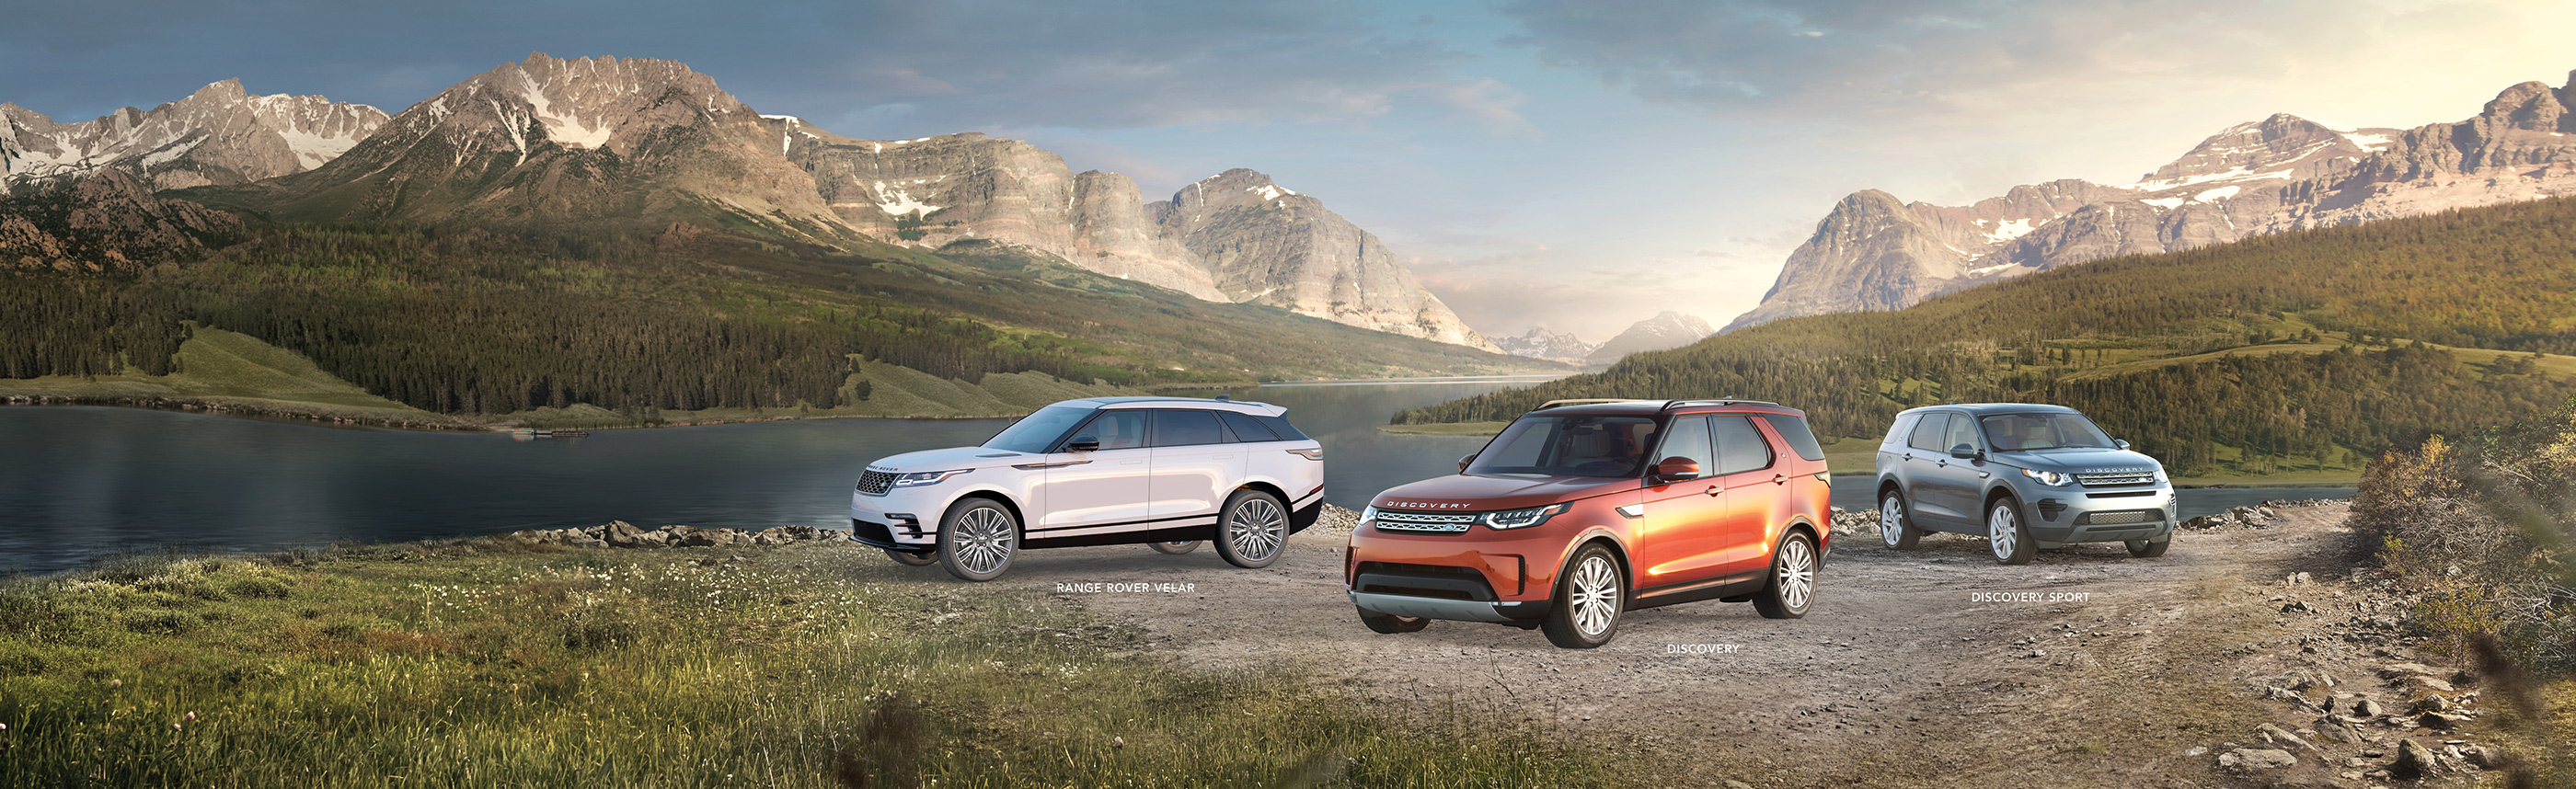 2019 Land Rover models